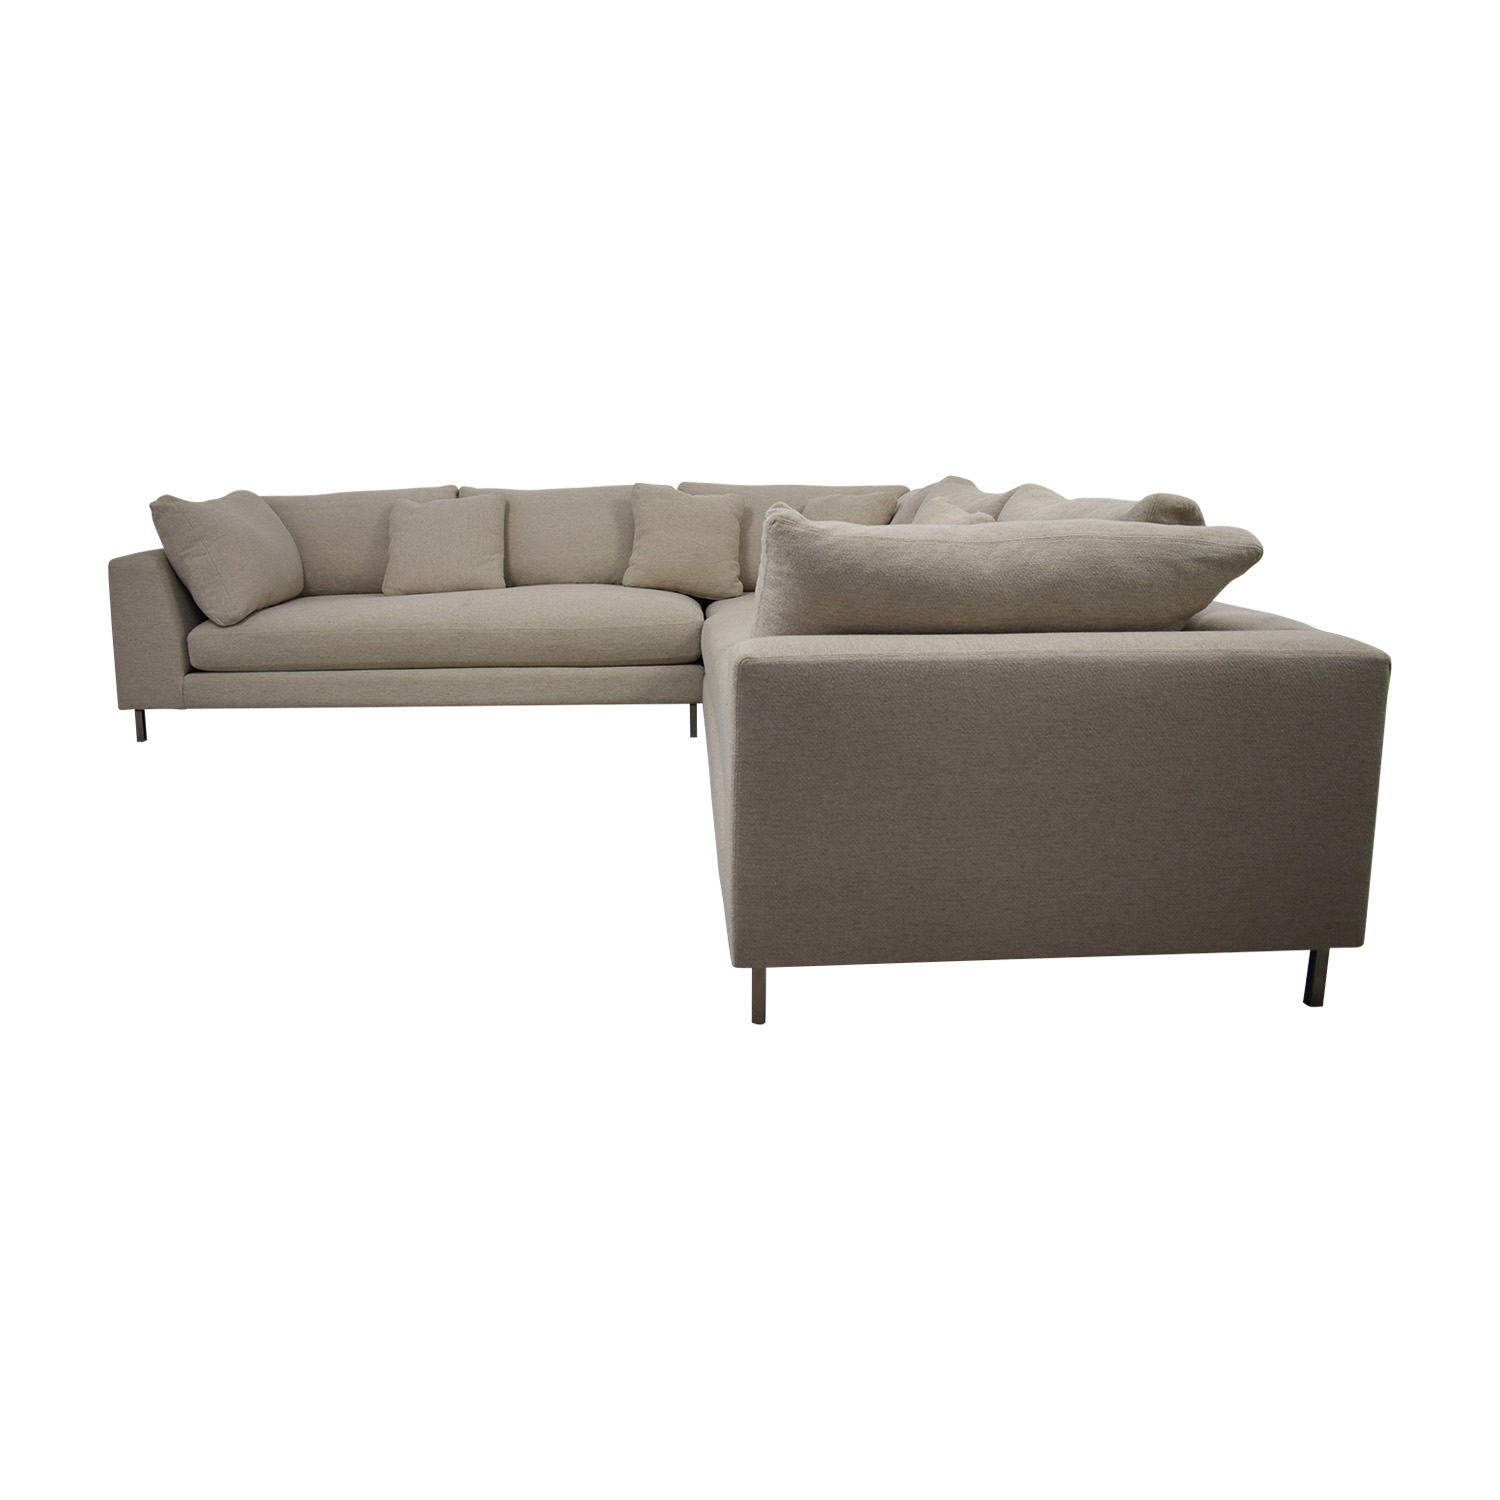 Room & Board Room & Board Beige L-Shaped Sectional Sofas